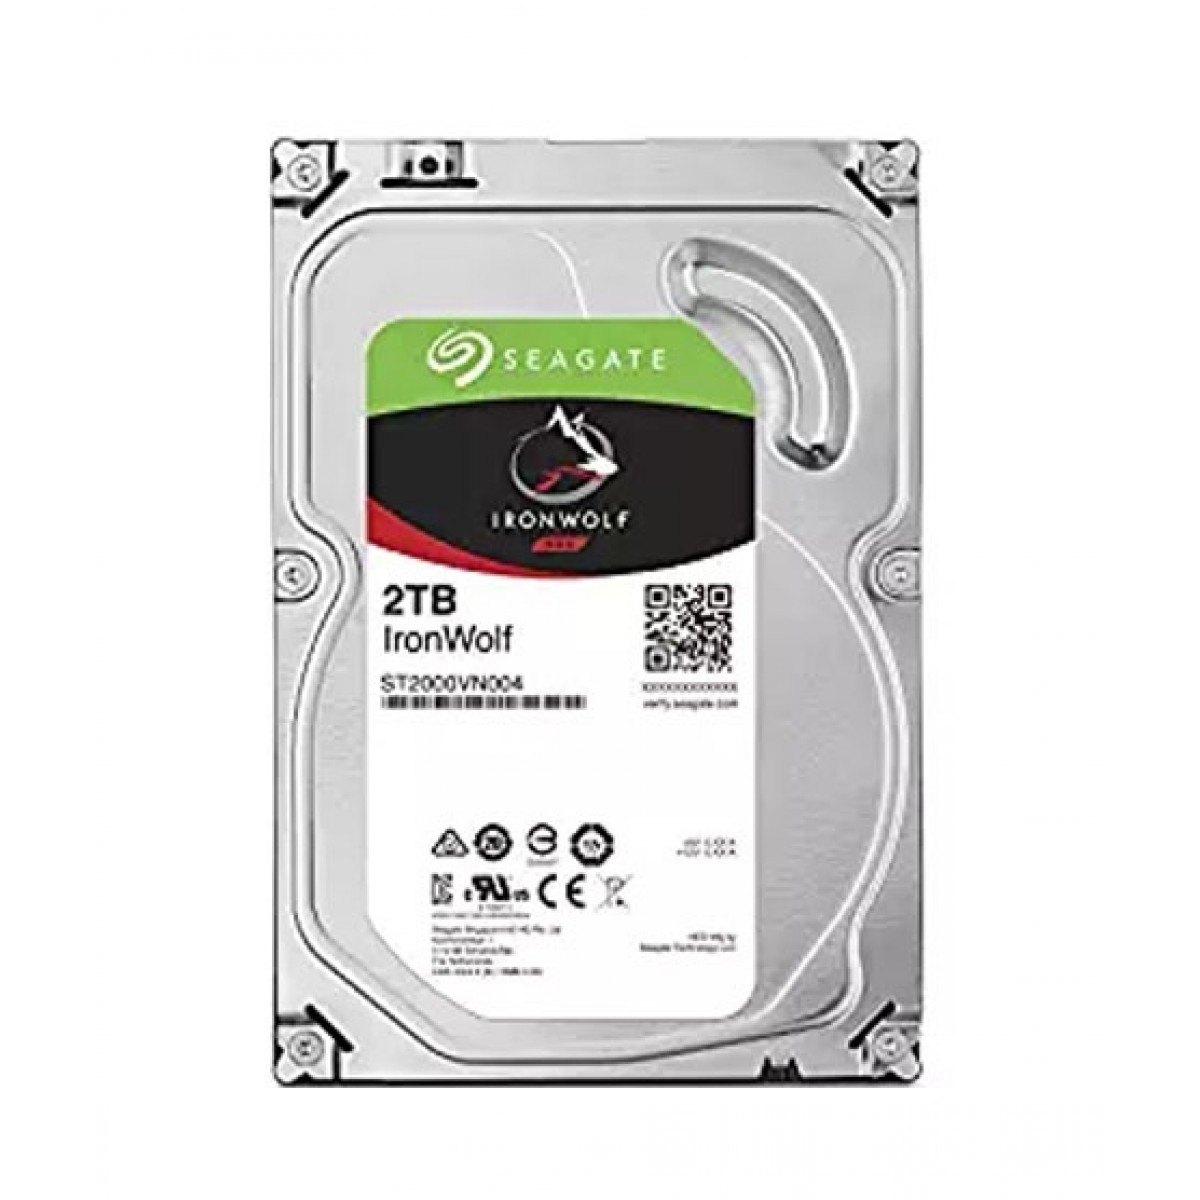 Seagate Iron Wolf 2TB 7200RPM Hard Drive (ST2000VN004)